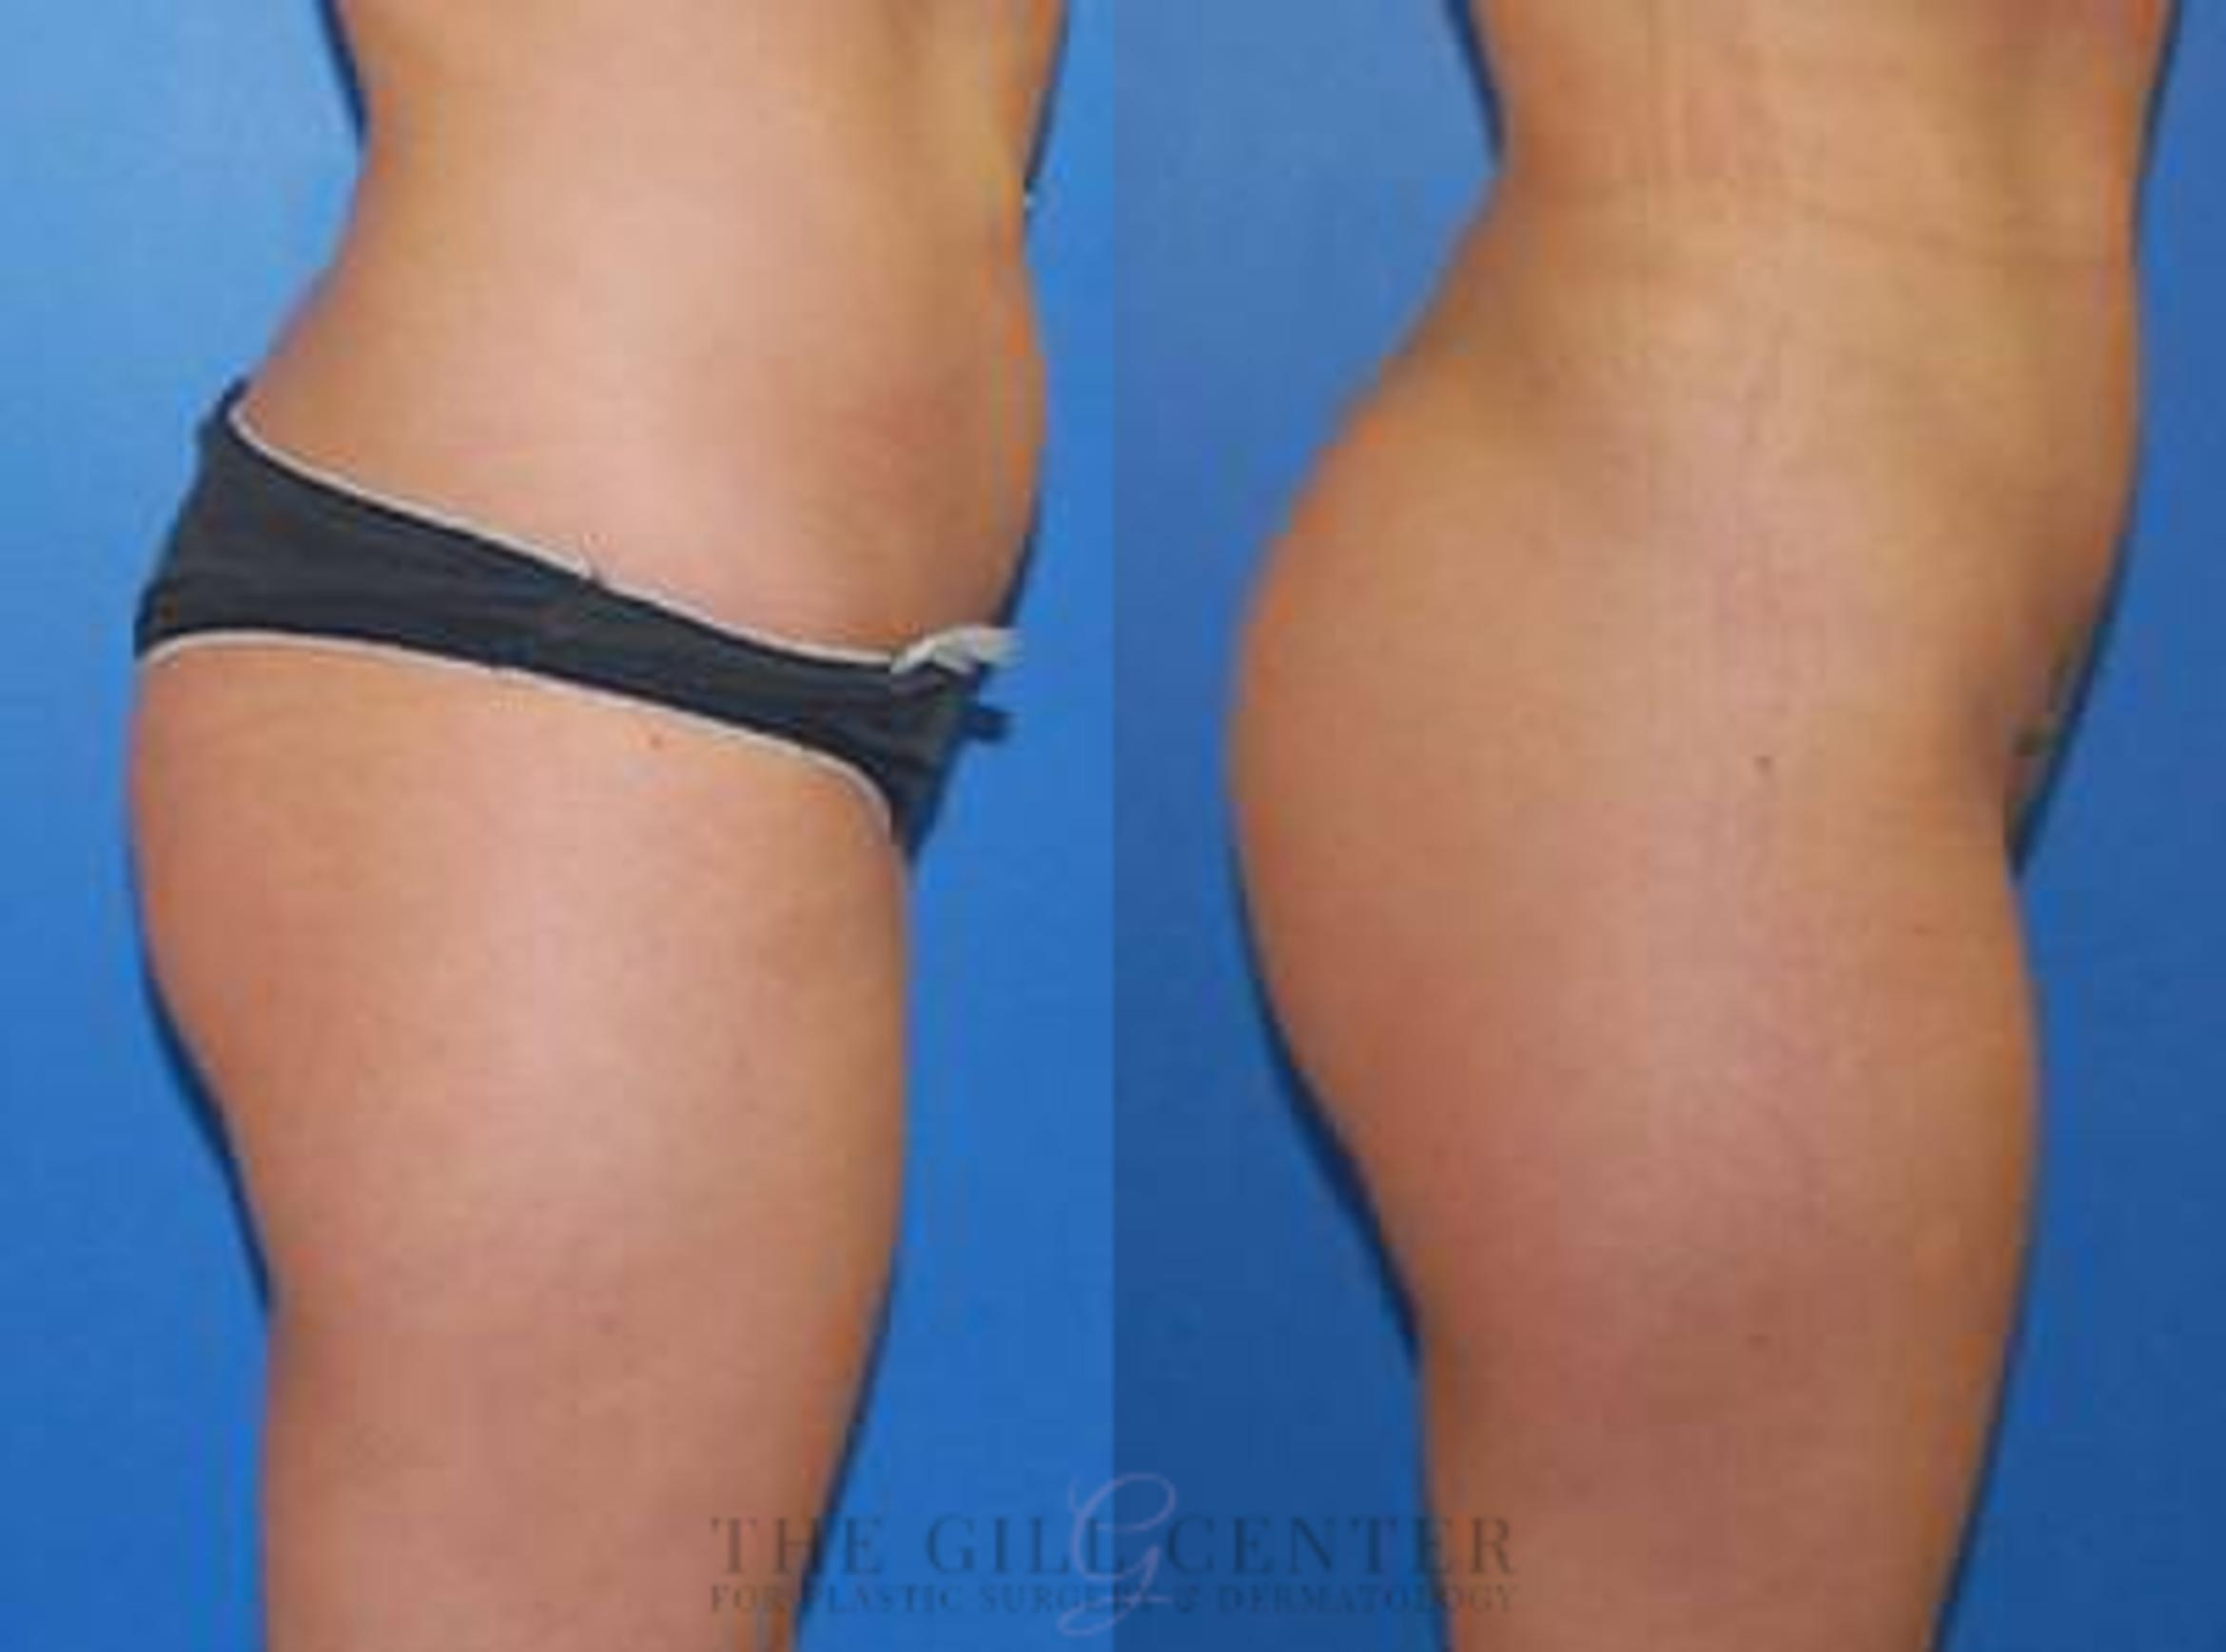 Butt Lift Case 3 Before & After Right Side | Shenandoah, TX | The Gill Center for Plastic Surgery and Dermatology